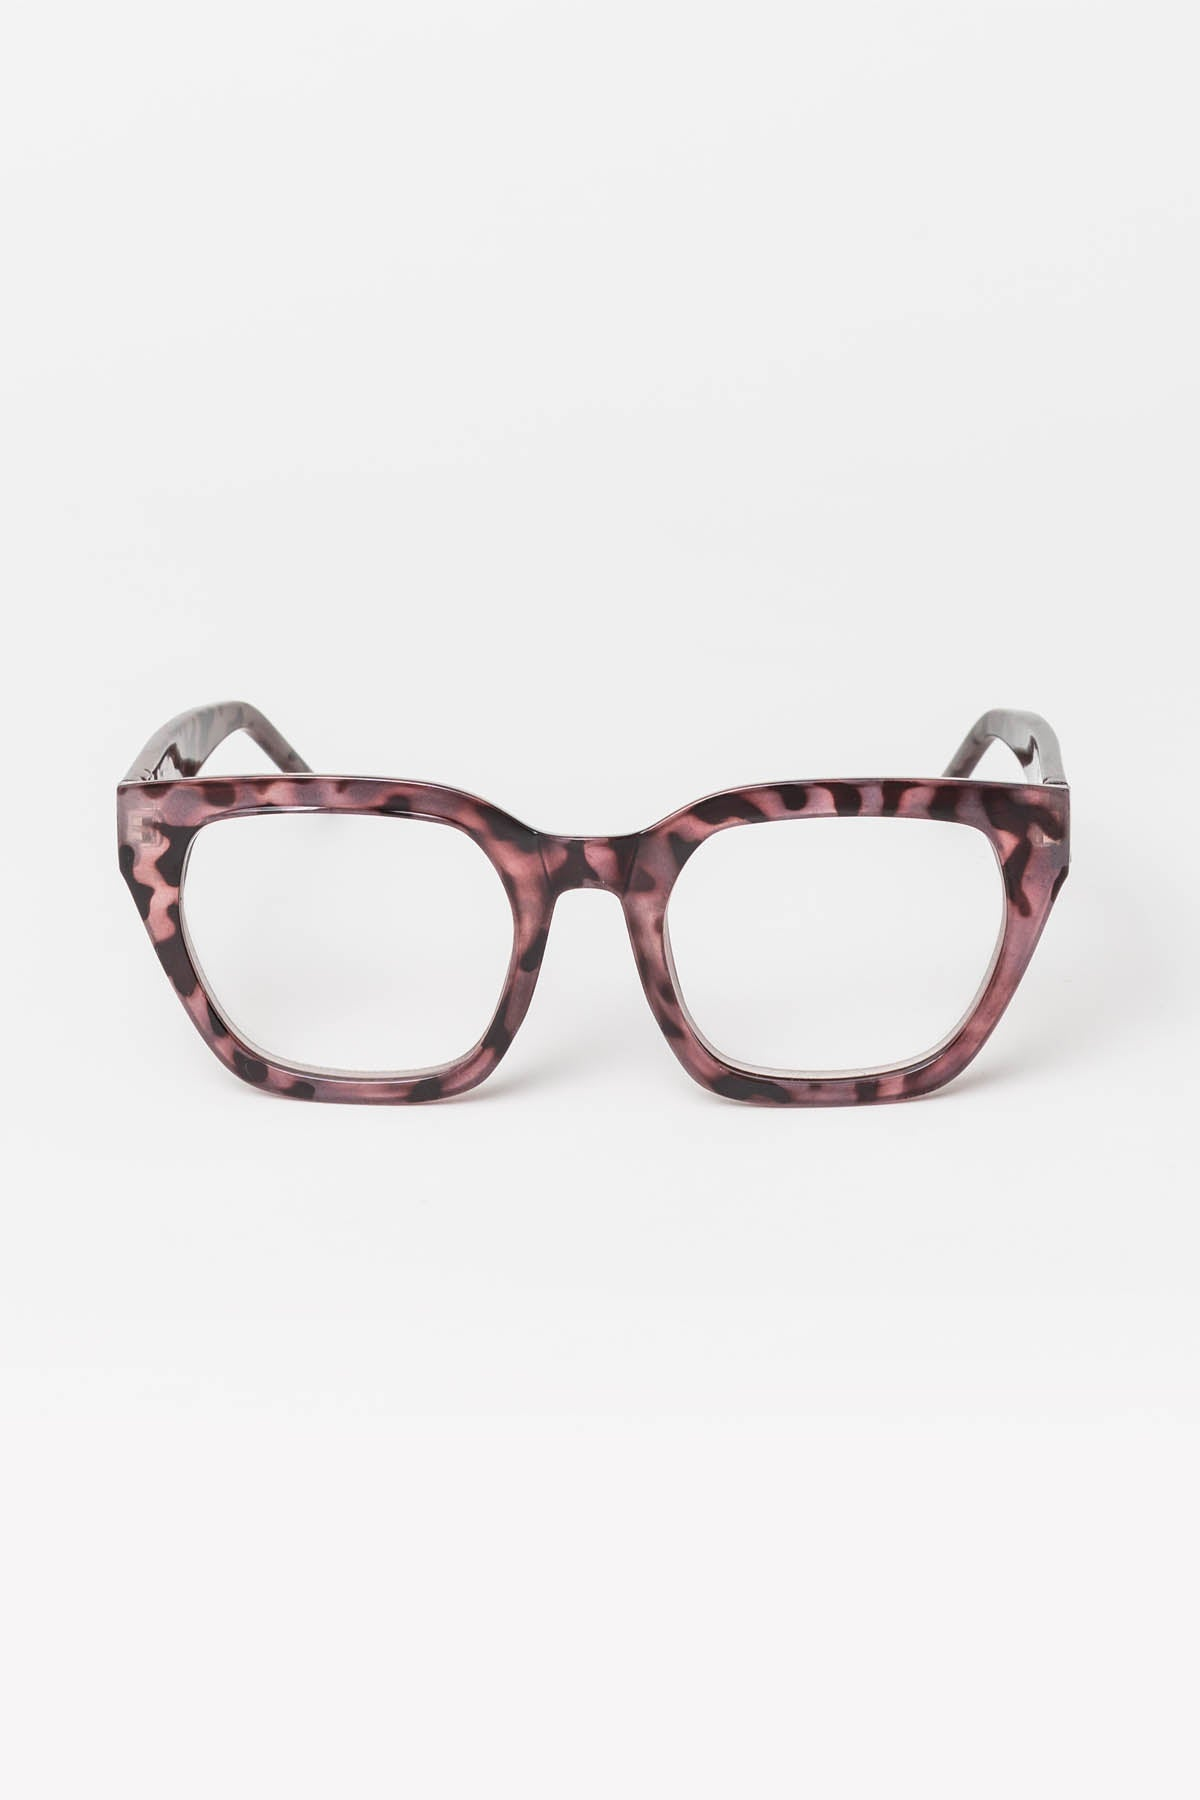 Ava Pink Tortoiseshell Reading Glasses